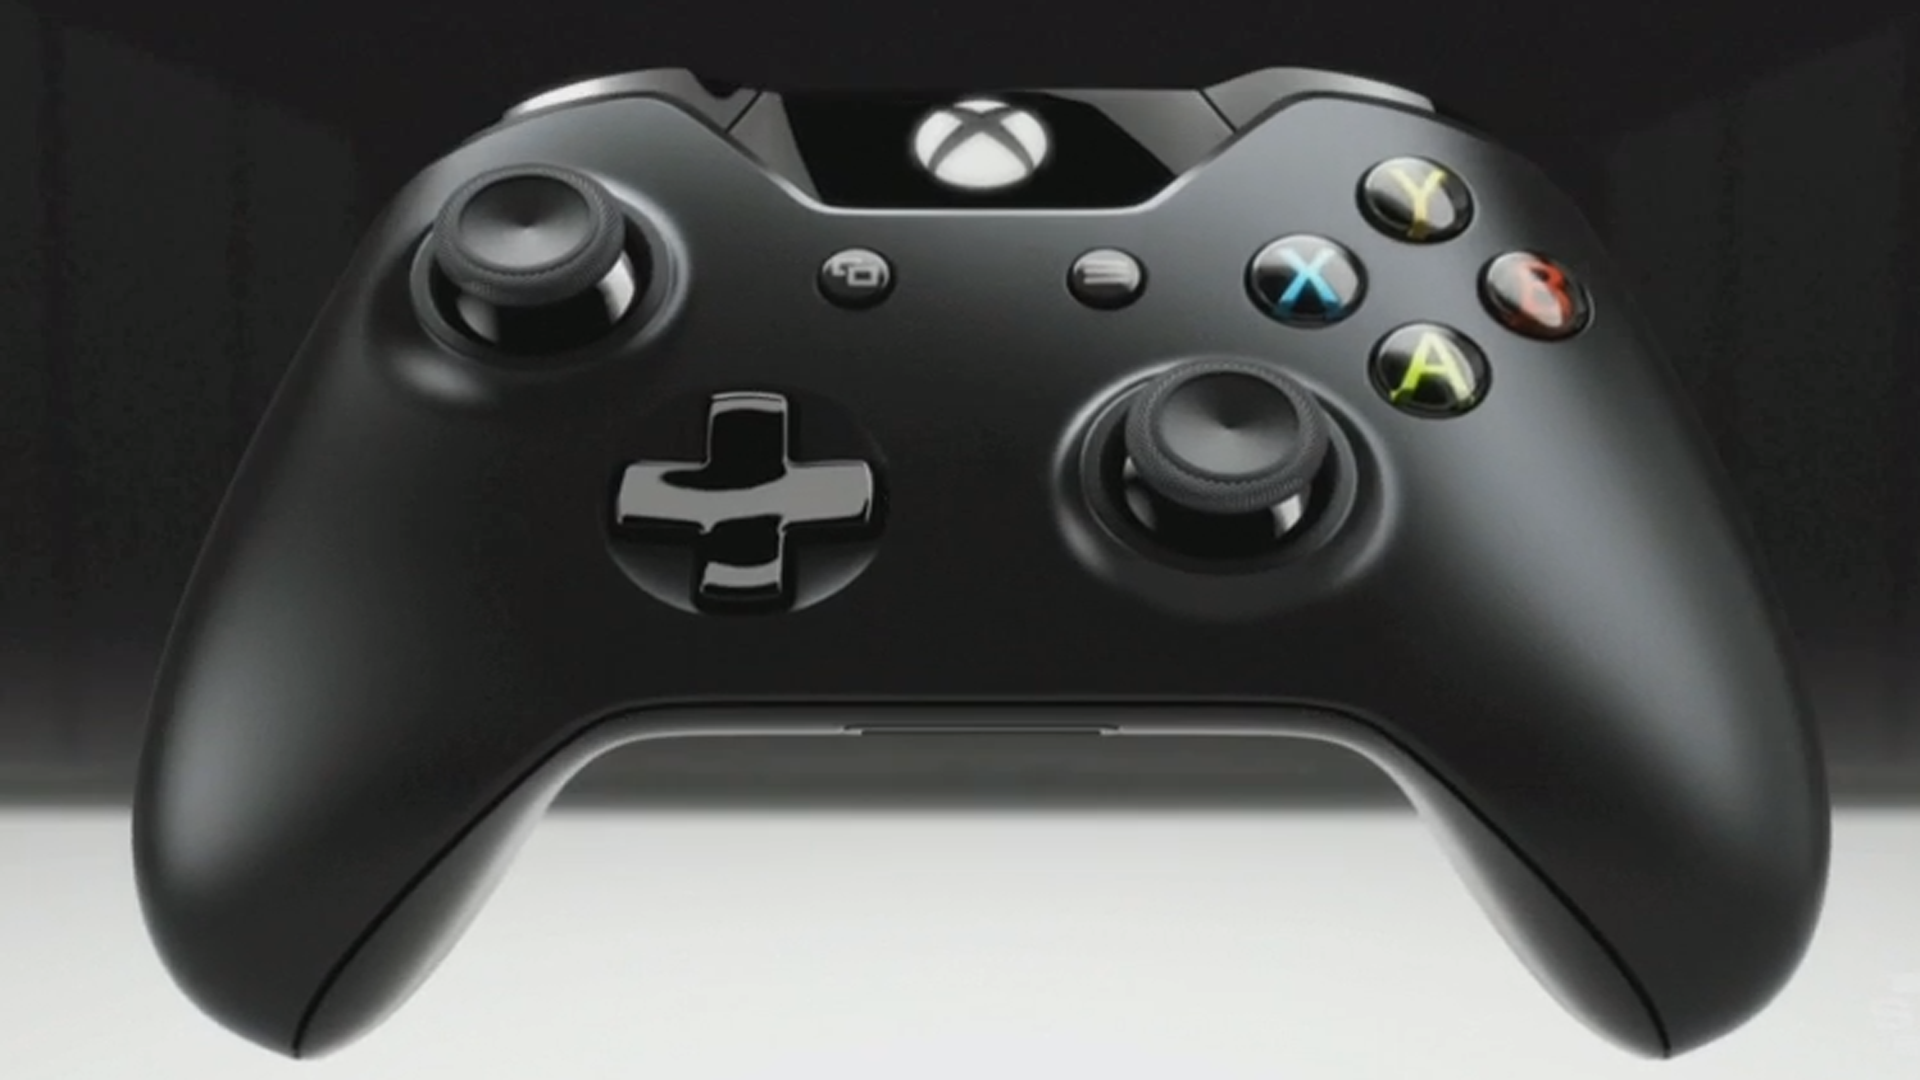 Xbox One Wallpapers Hd: Xbox One Wallpaper 1080P